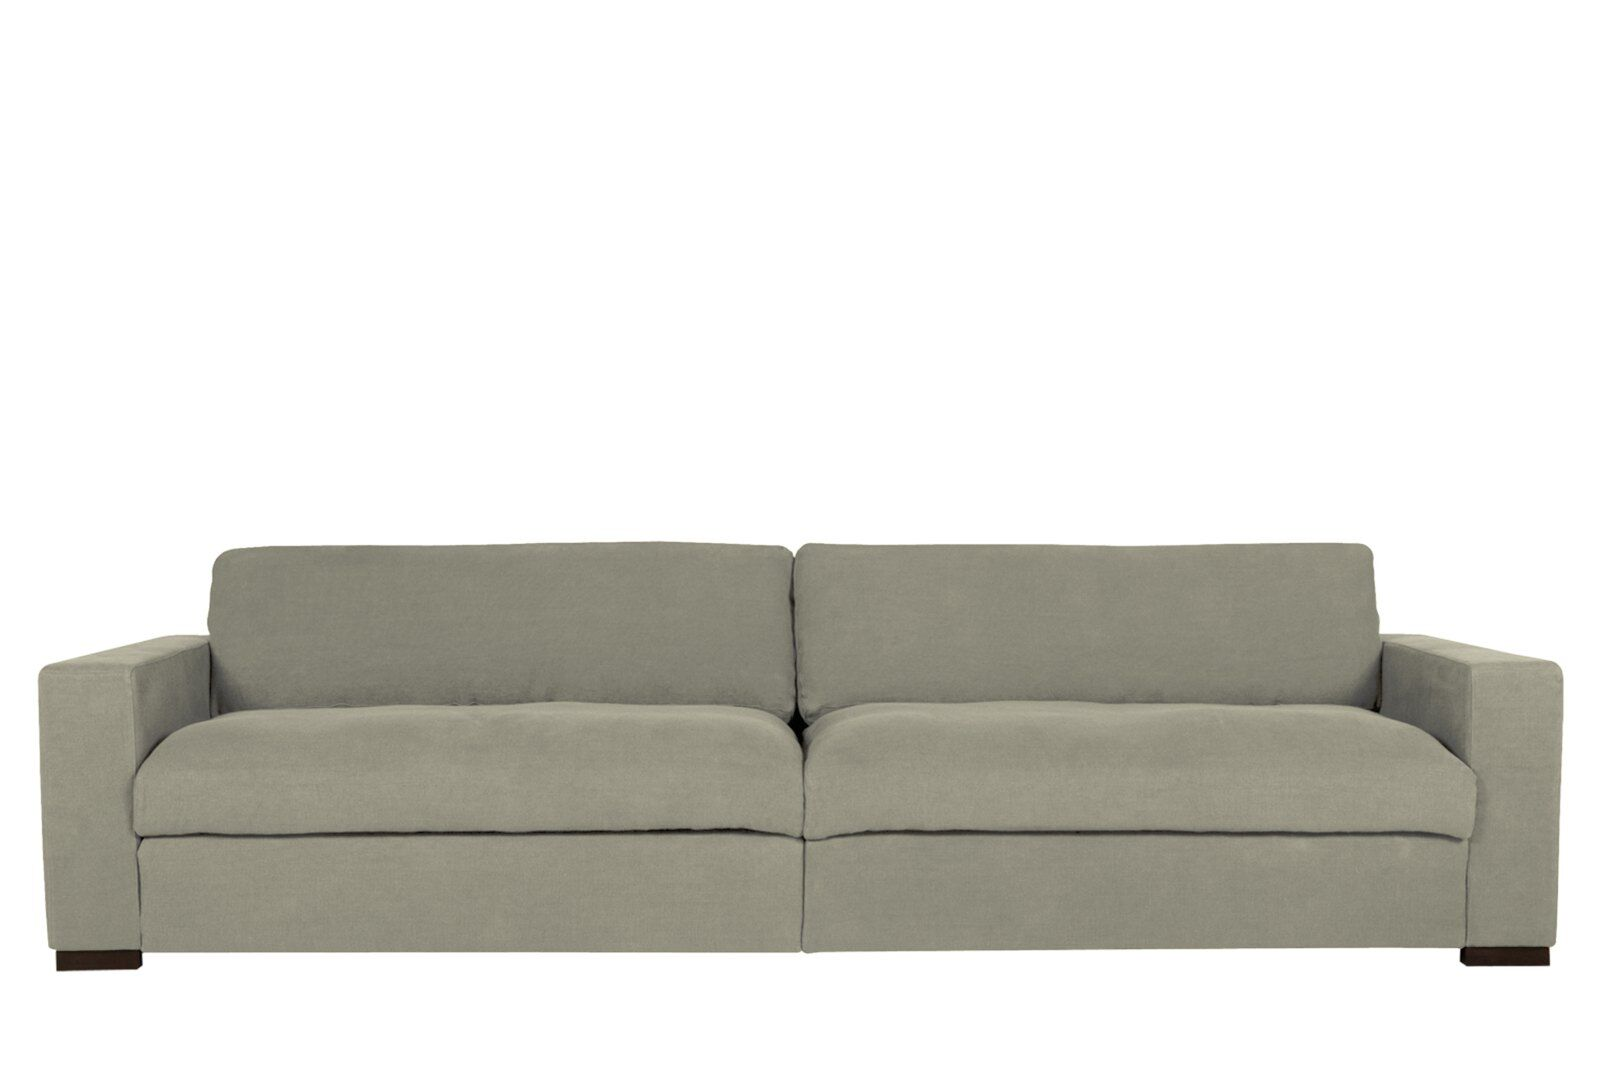 Astrid 3 Seater Compact Sofa / 1